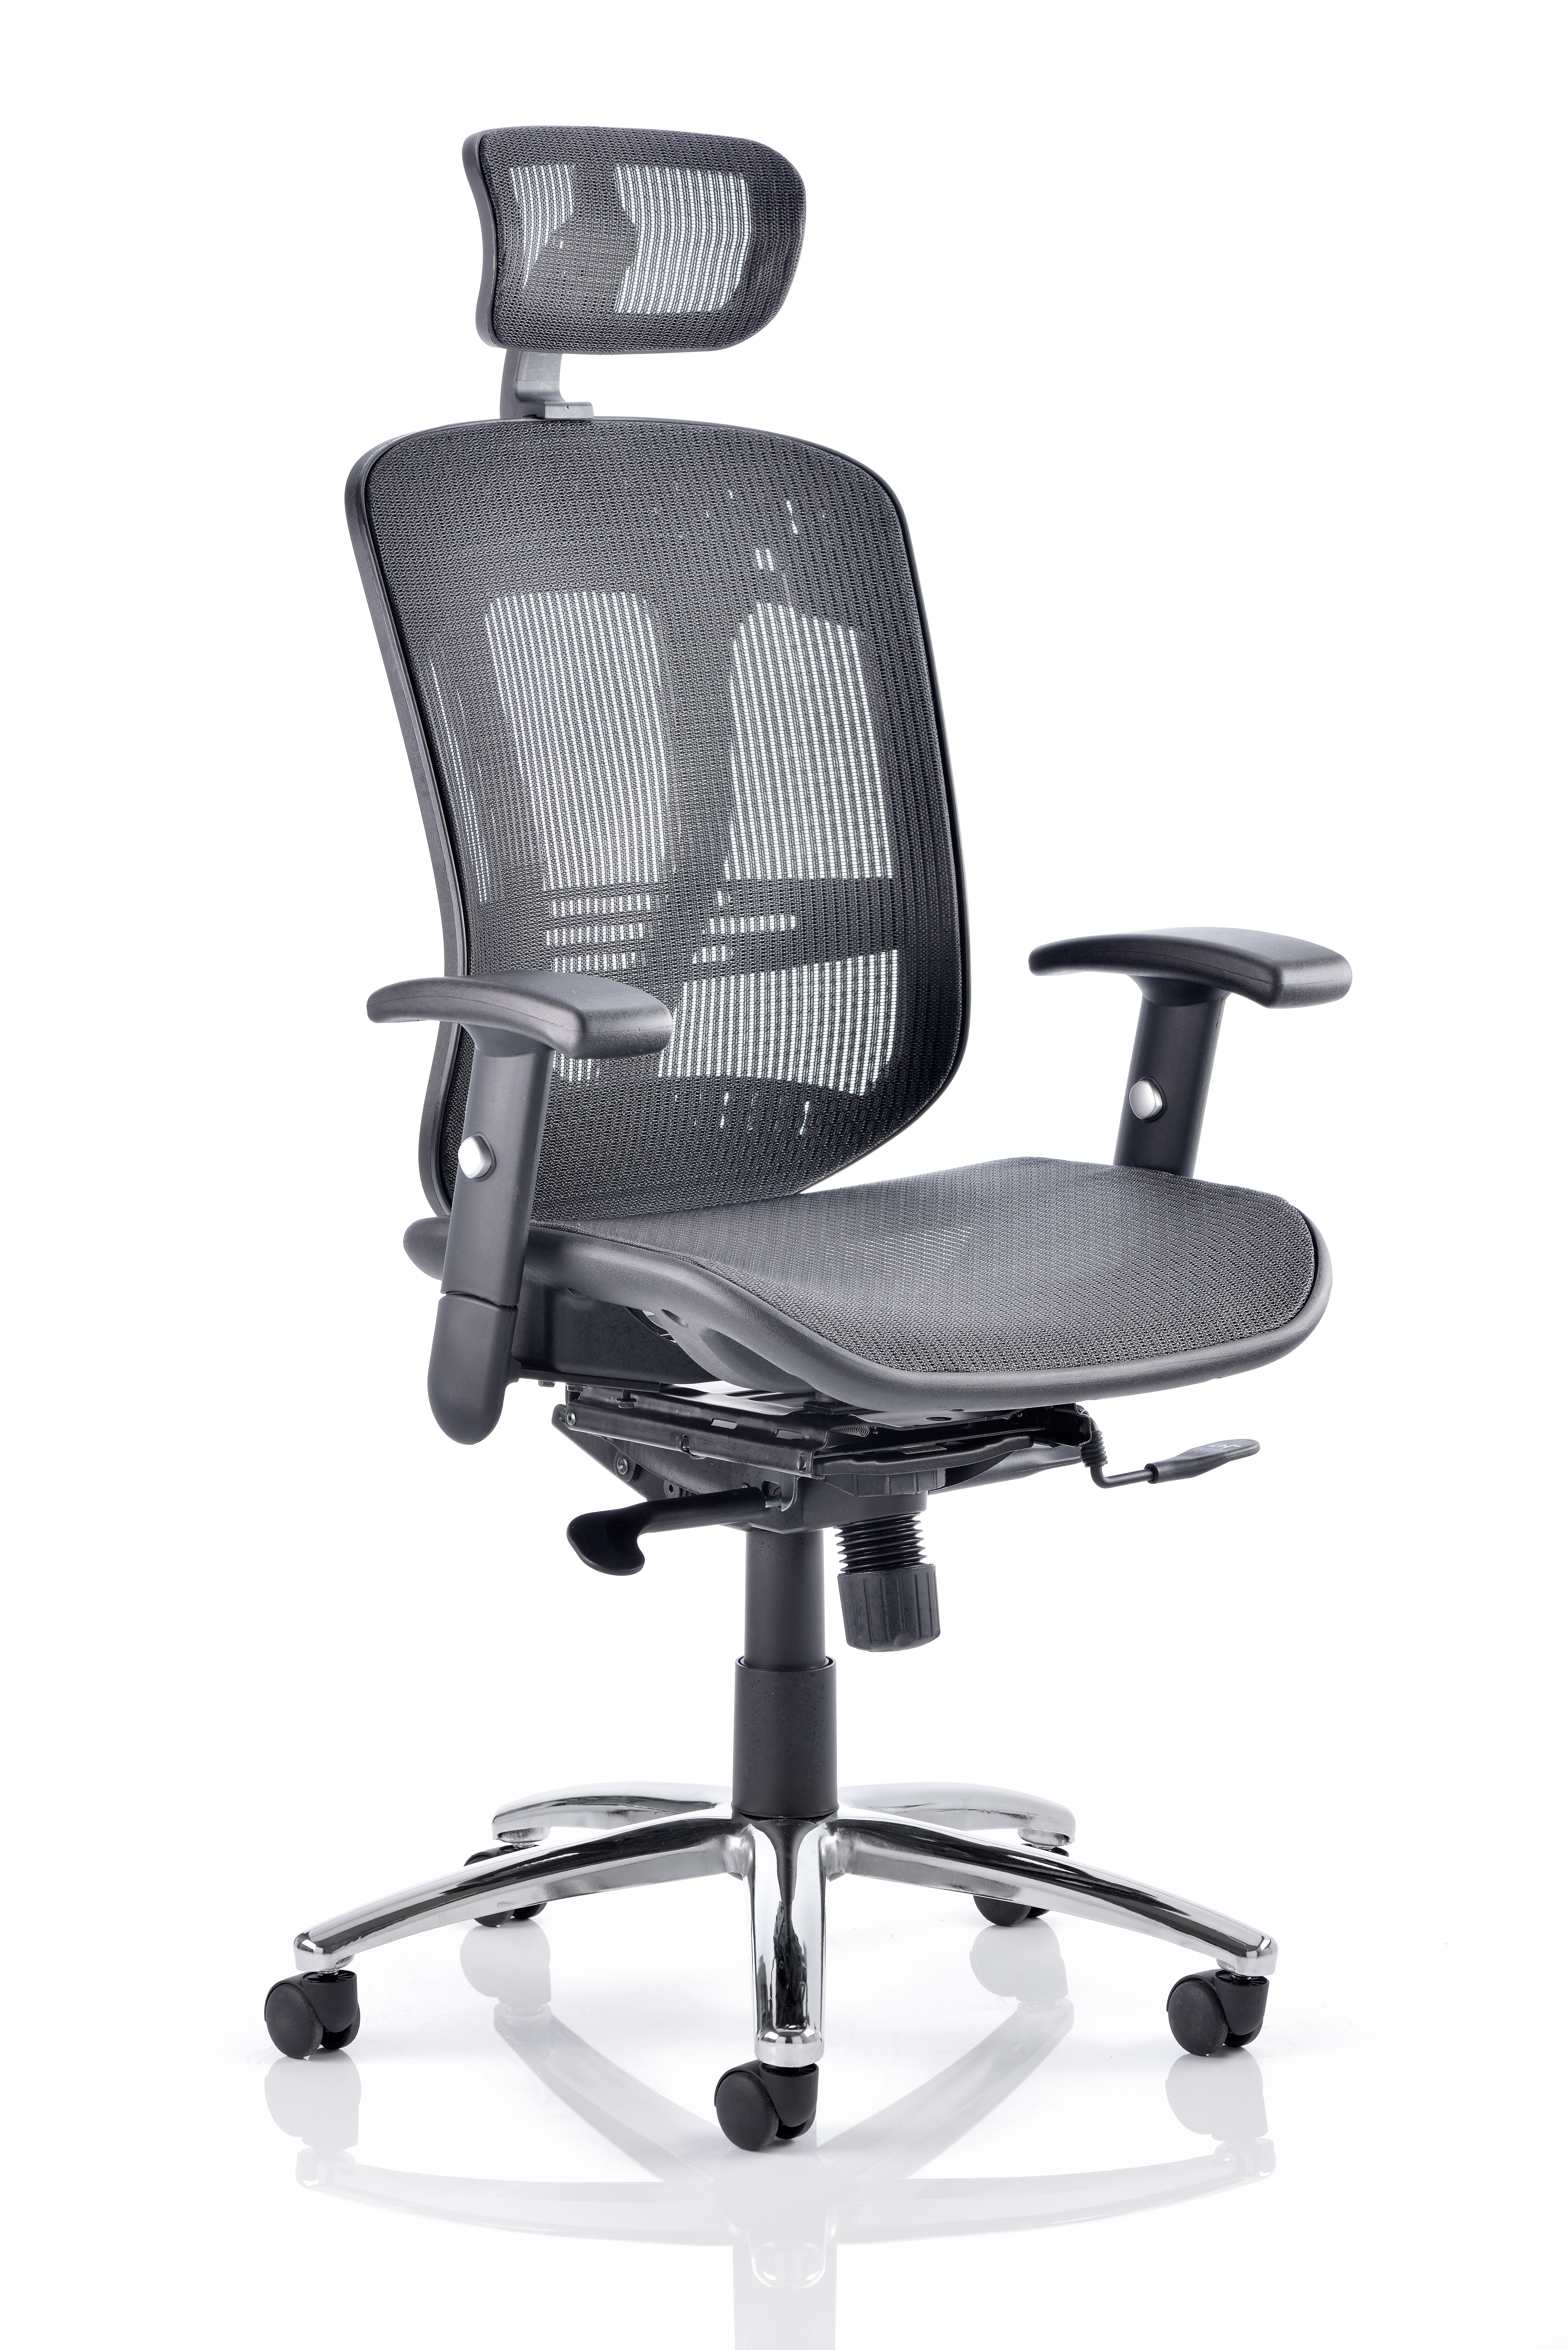 Executive Chairs Mirage II Executive Chair Black Mesh With Headrest KC0148